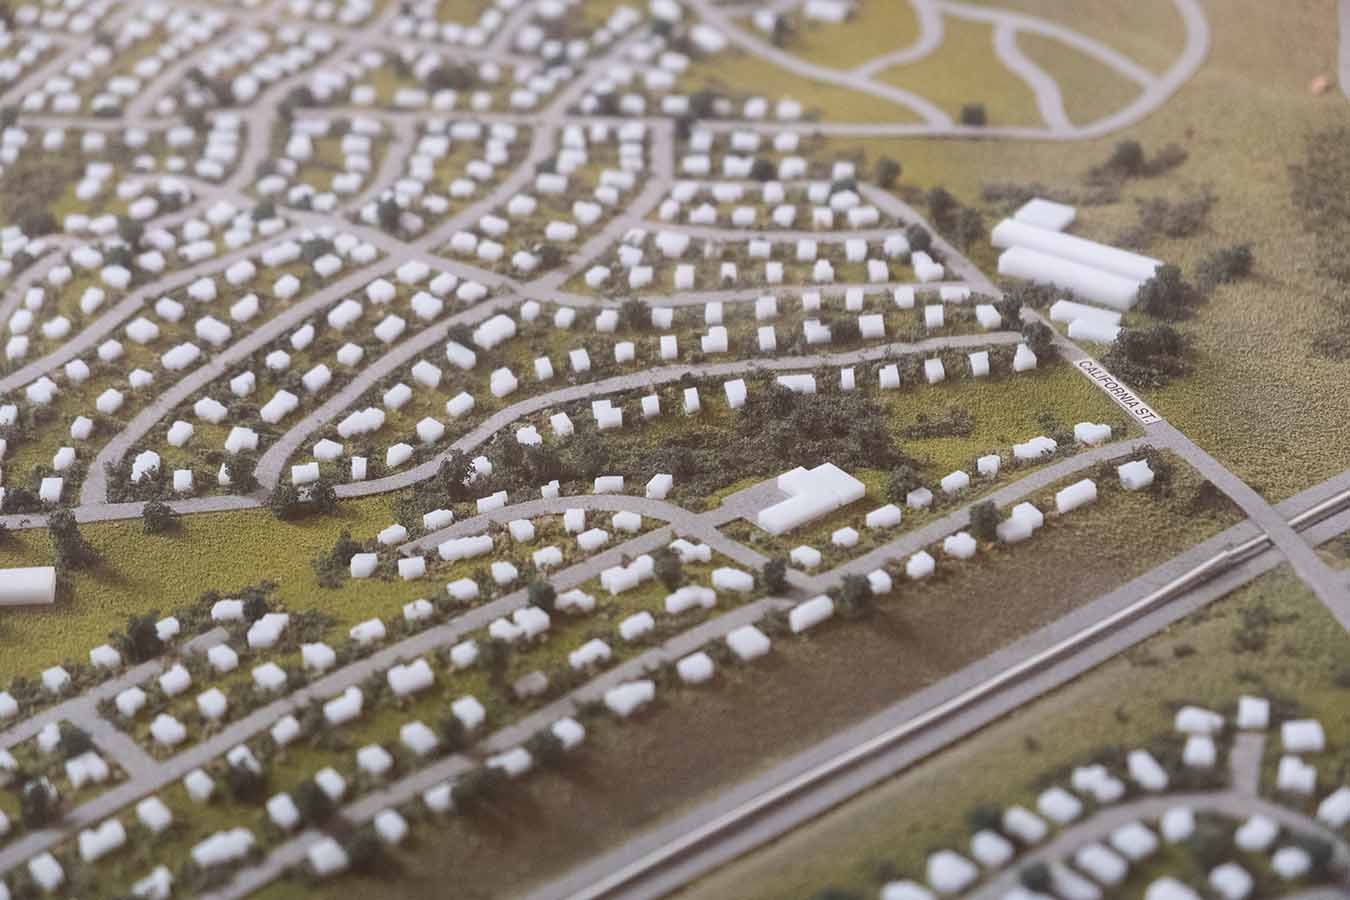 Photo of a physical model of a neighborhood